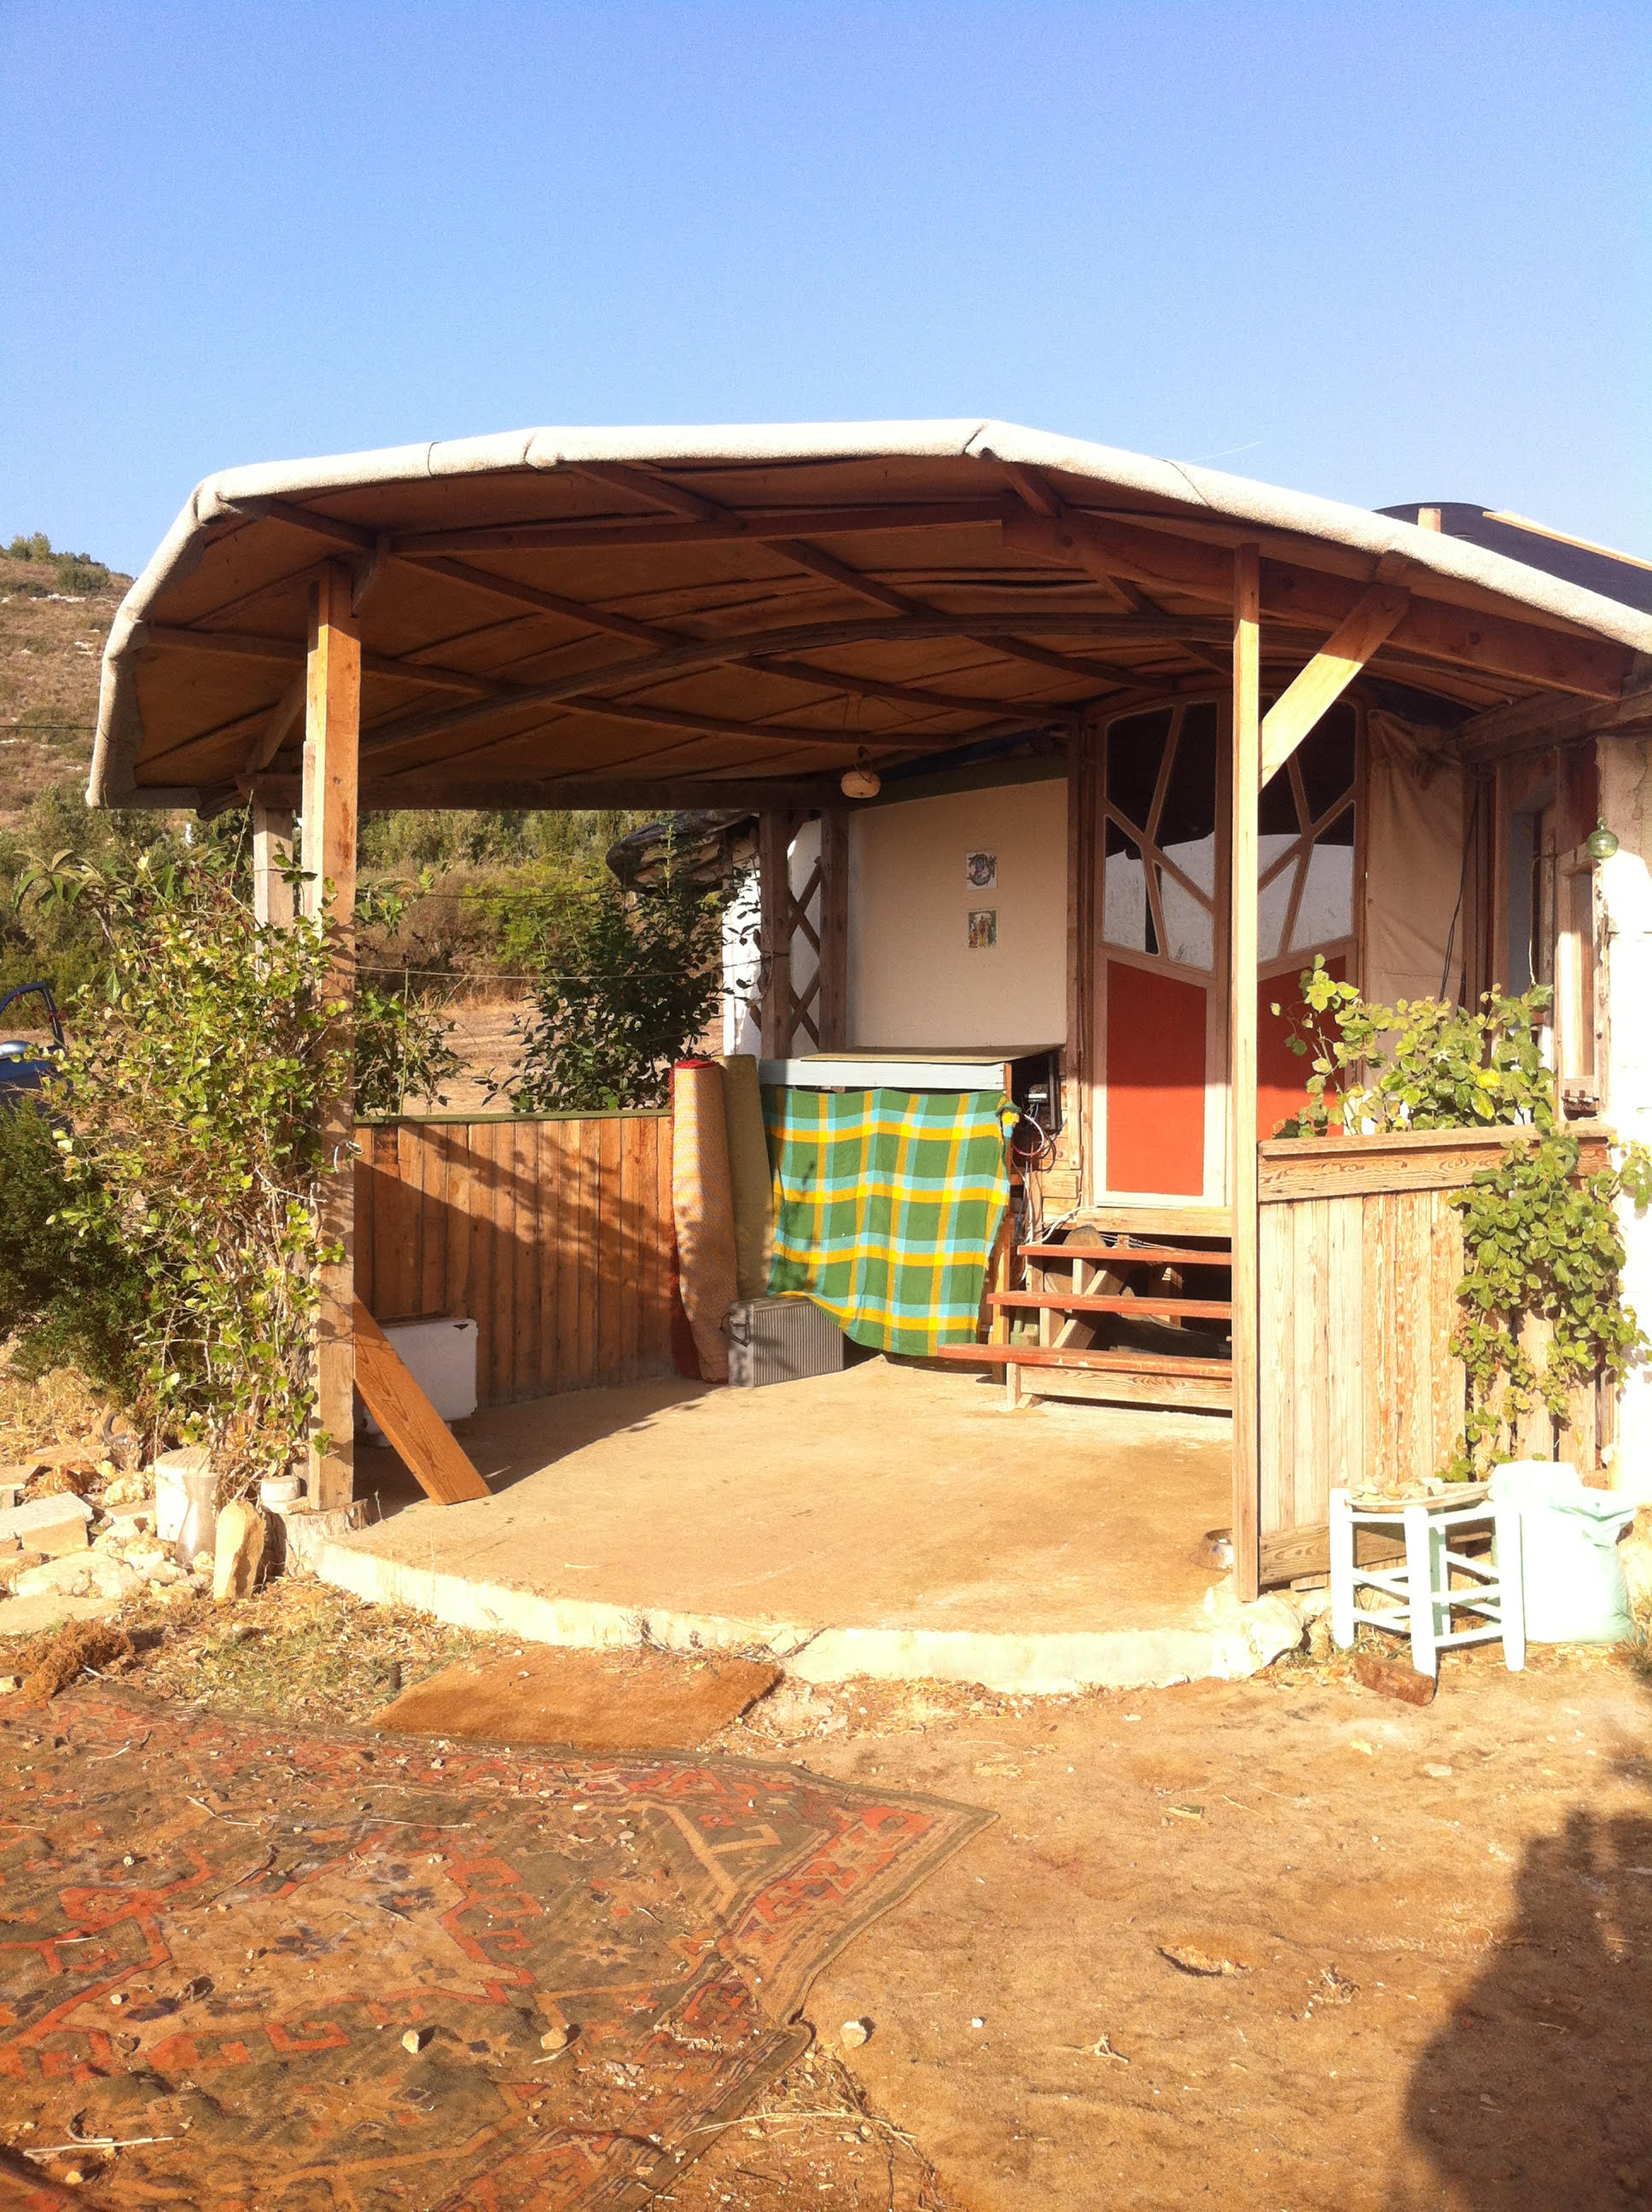 Man and Son Living in Renovated Yurt